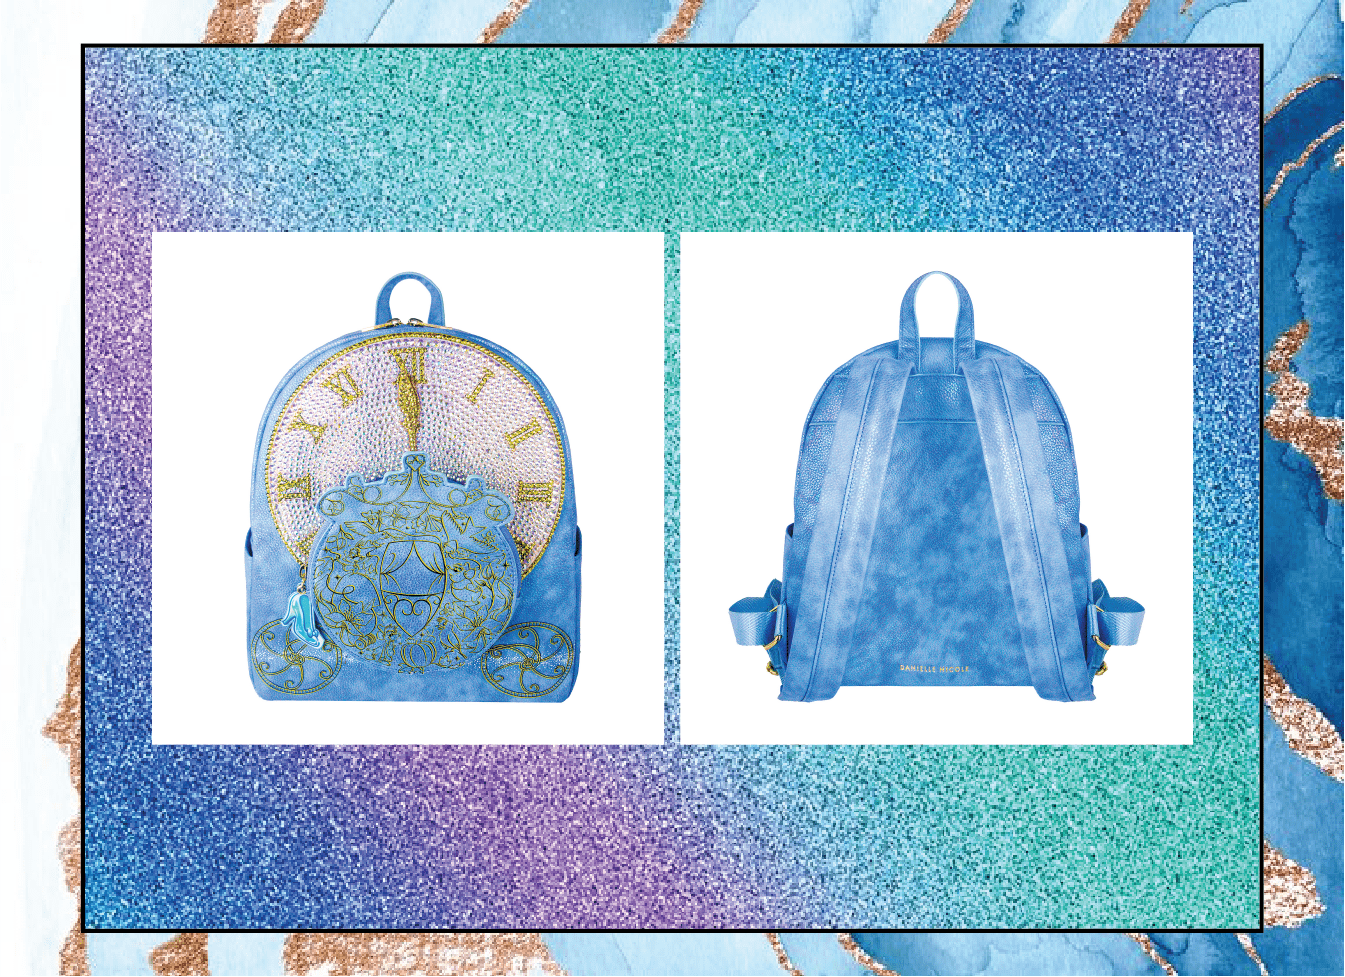 Introducing the New Crystalized Disney Cinderella Collections by Danielle Nicole 3